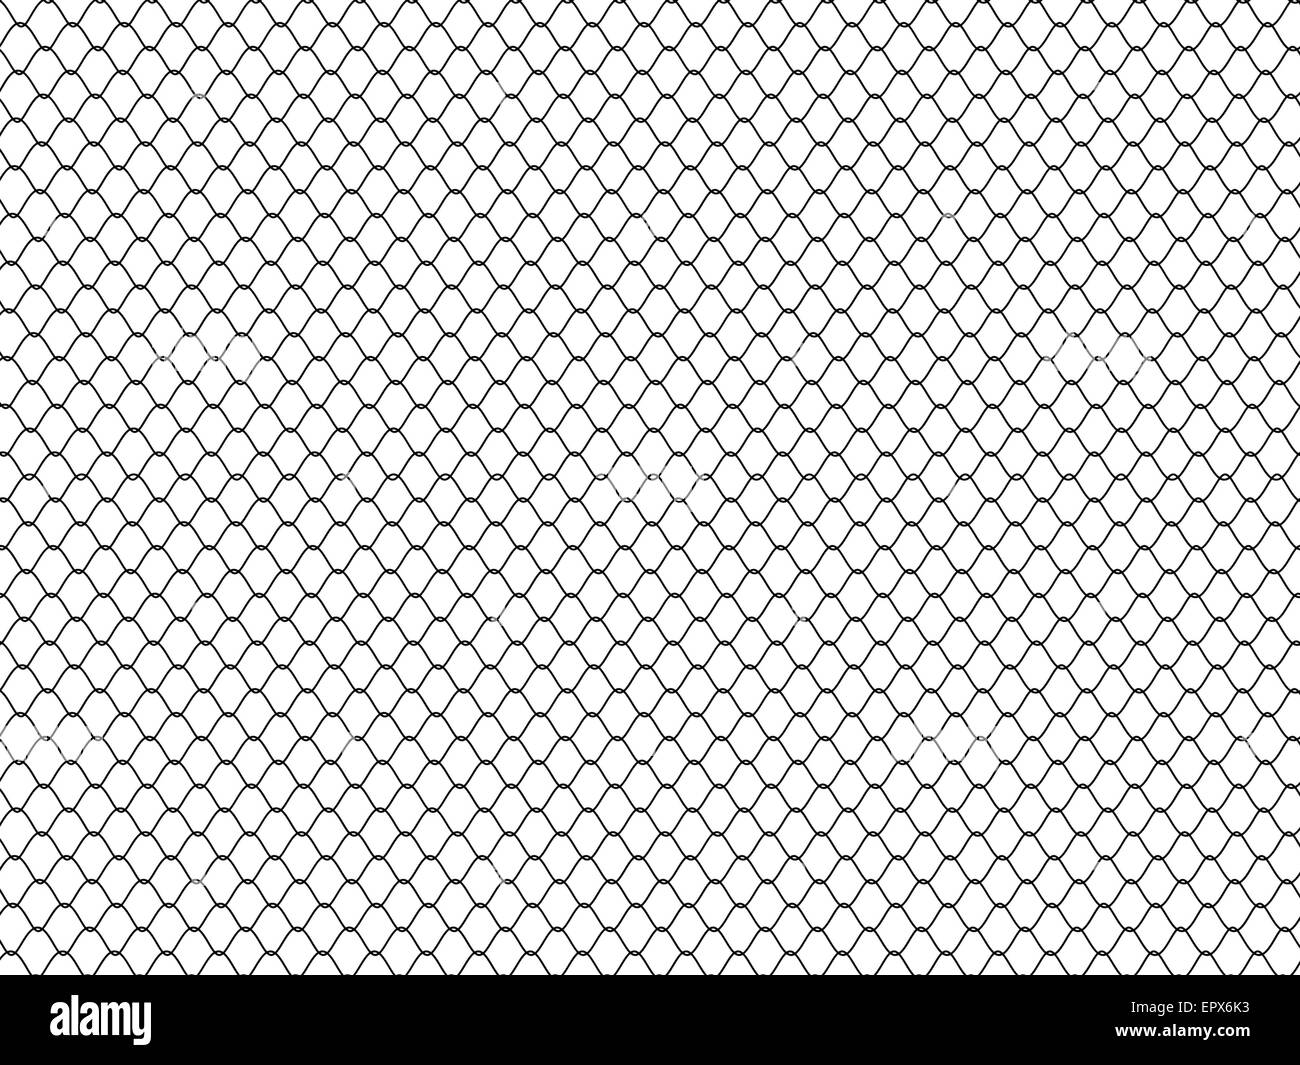 Steel Wire Mesh Background, 3d illustration on white Stock Photo ...